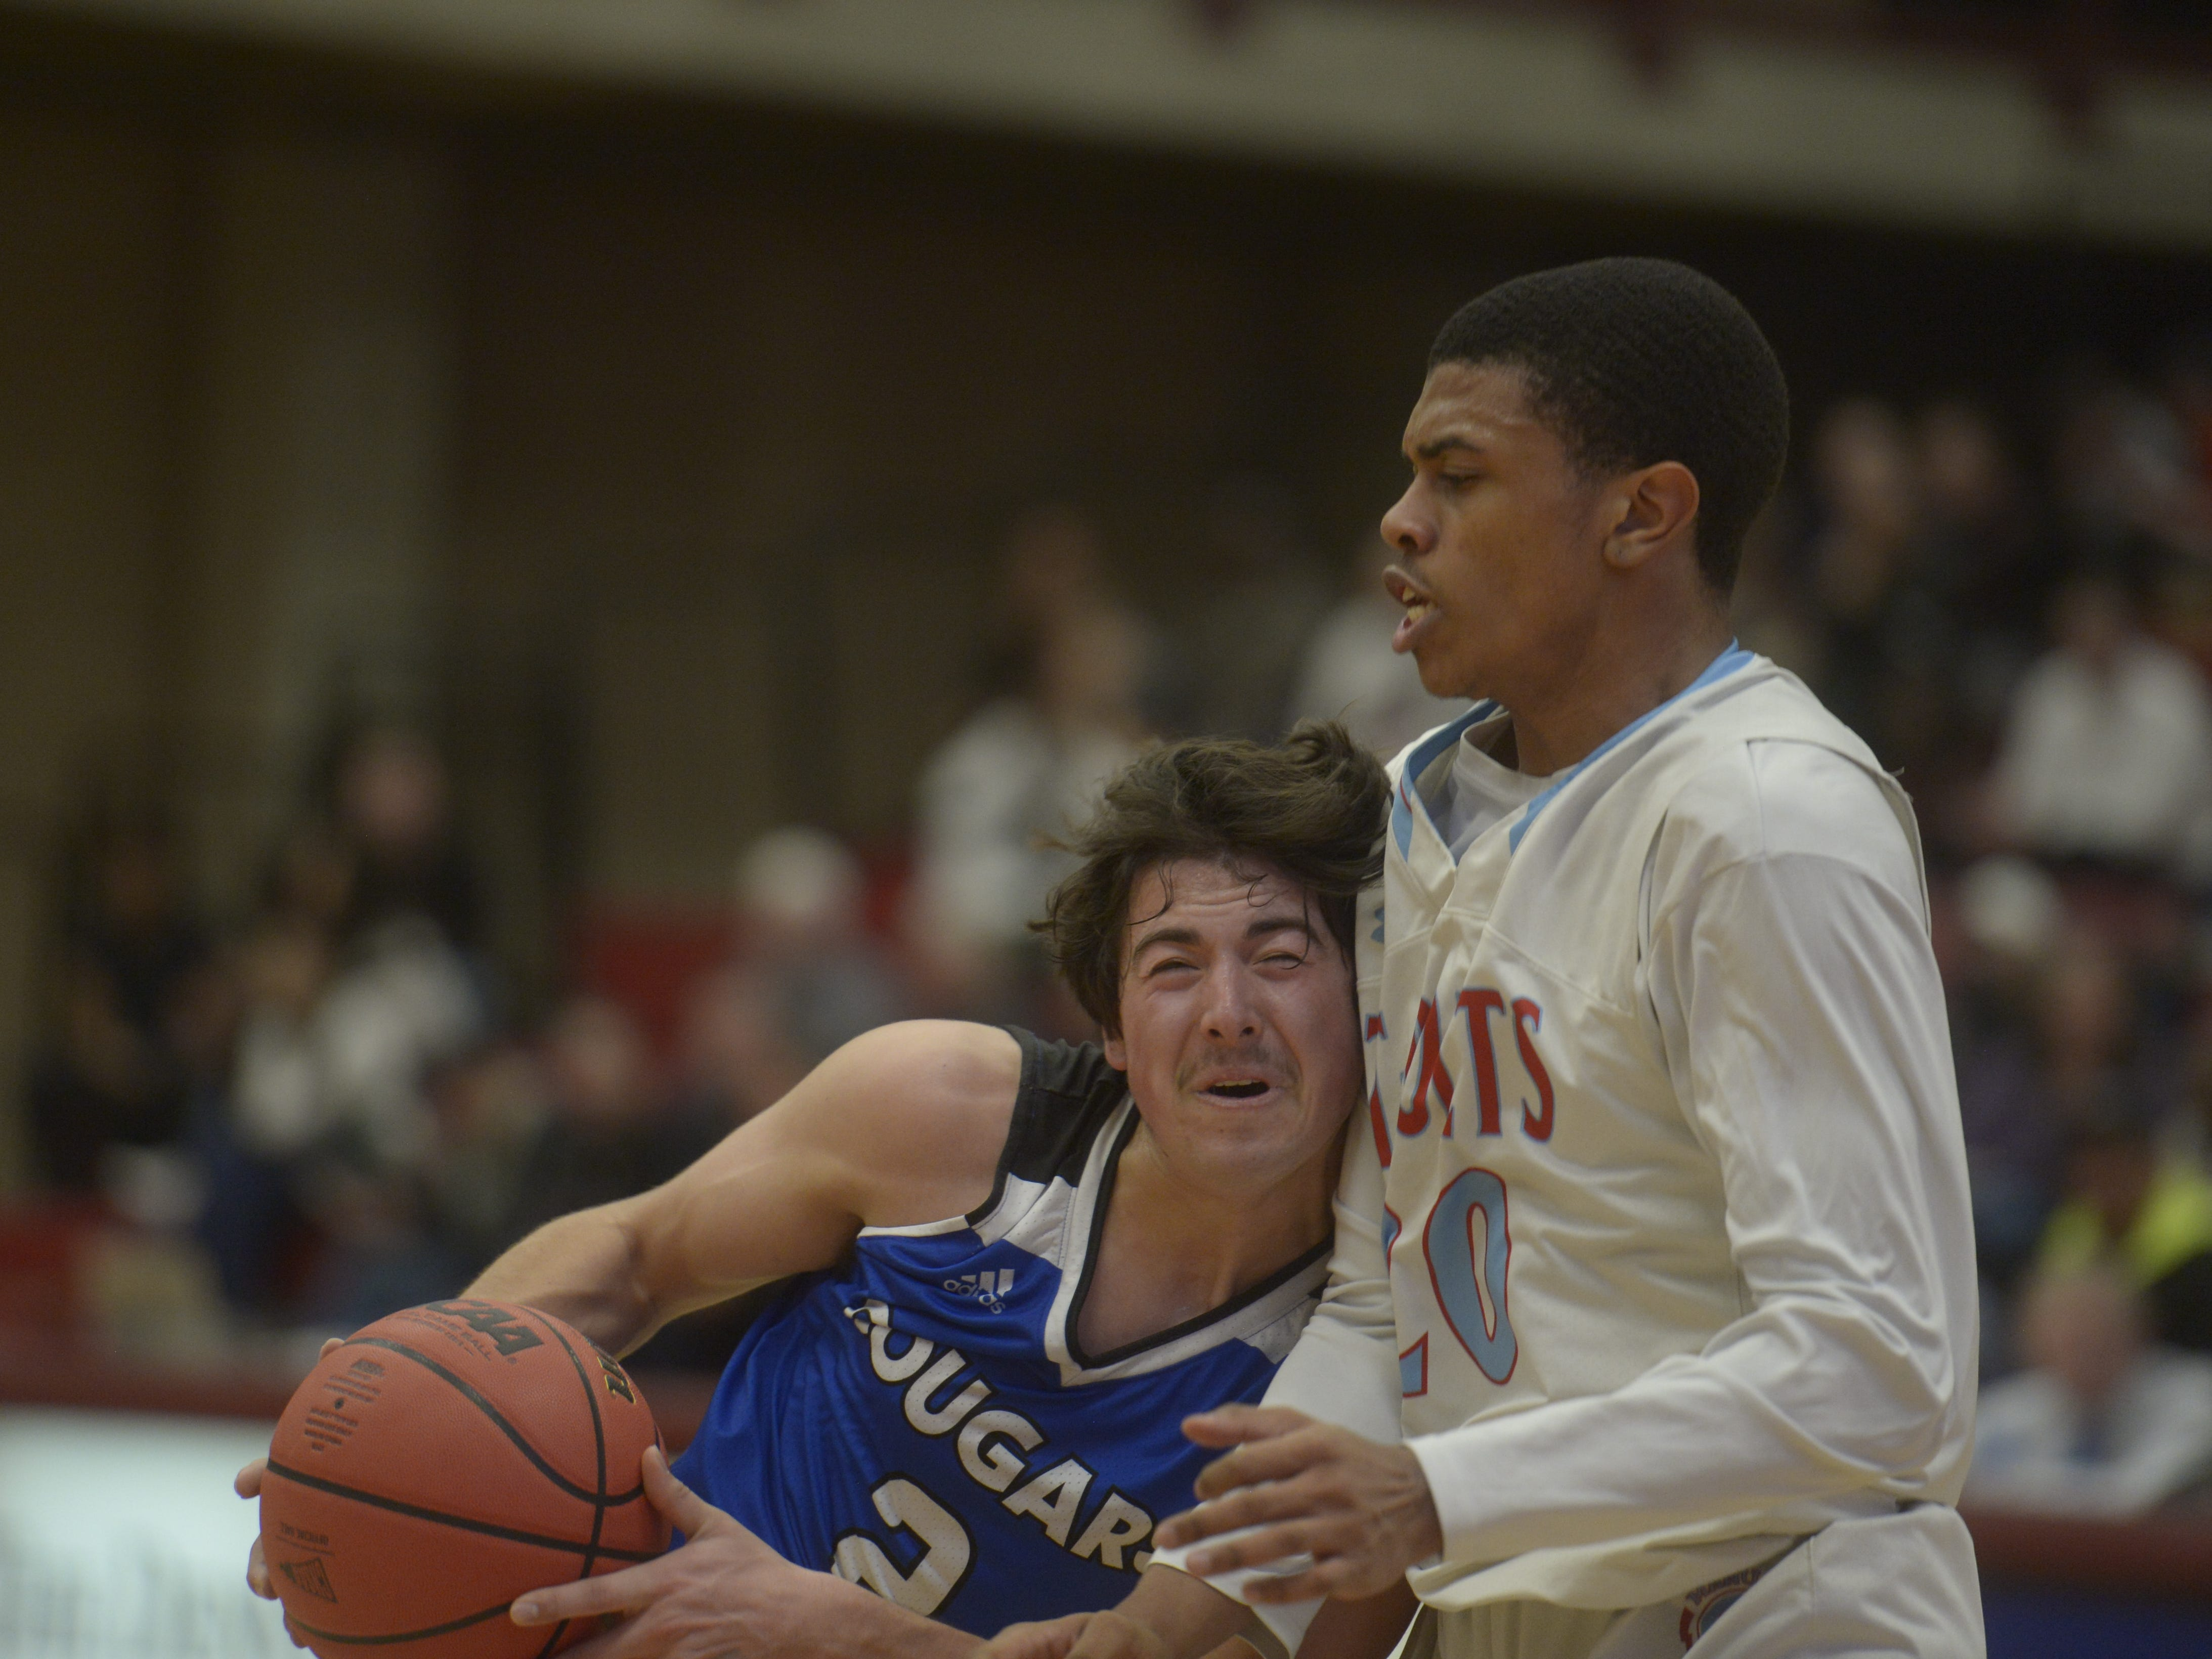 Resurrection Christian guard Jackson Romero tries to get past a defender during a Class 3A quarterfinals game against Manual at the University of Denver on Thursday, March 7, 2019.